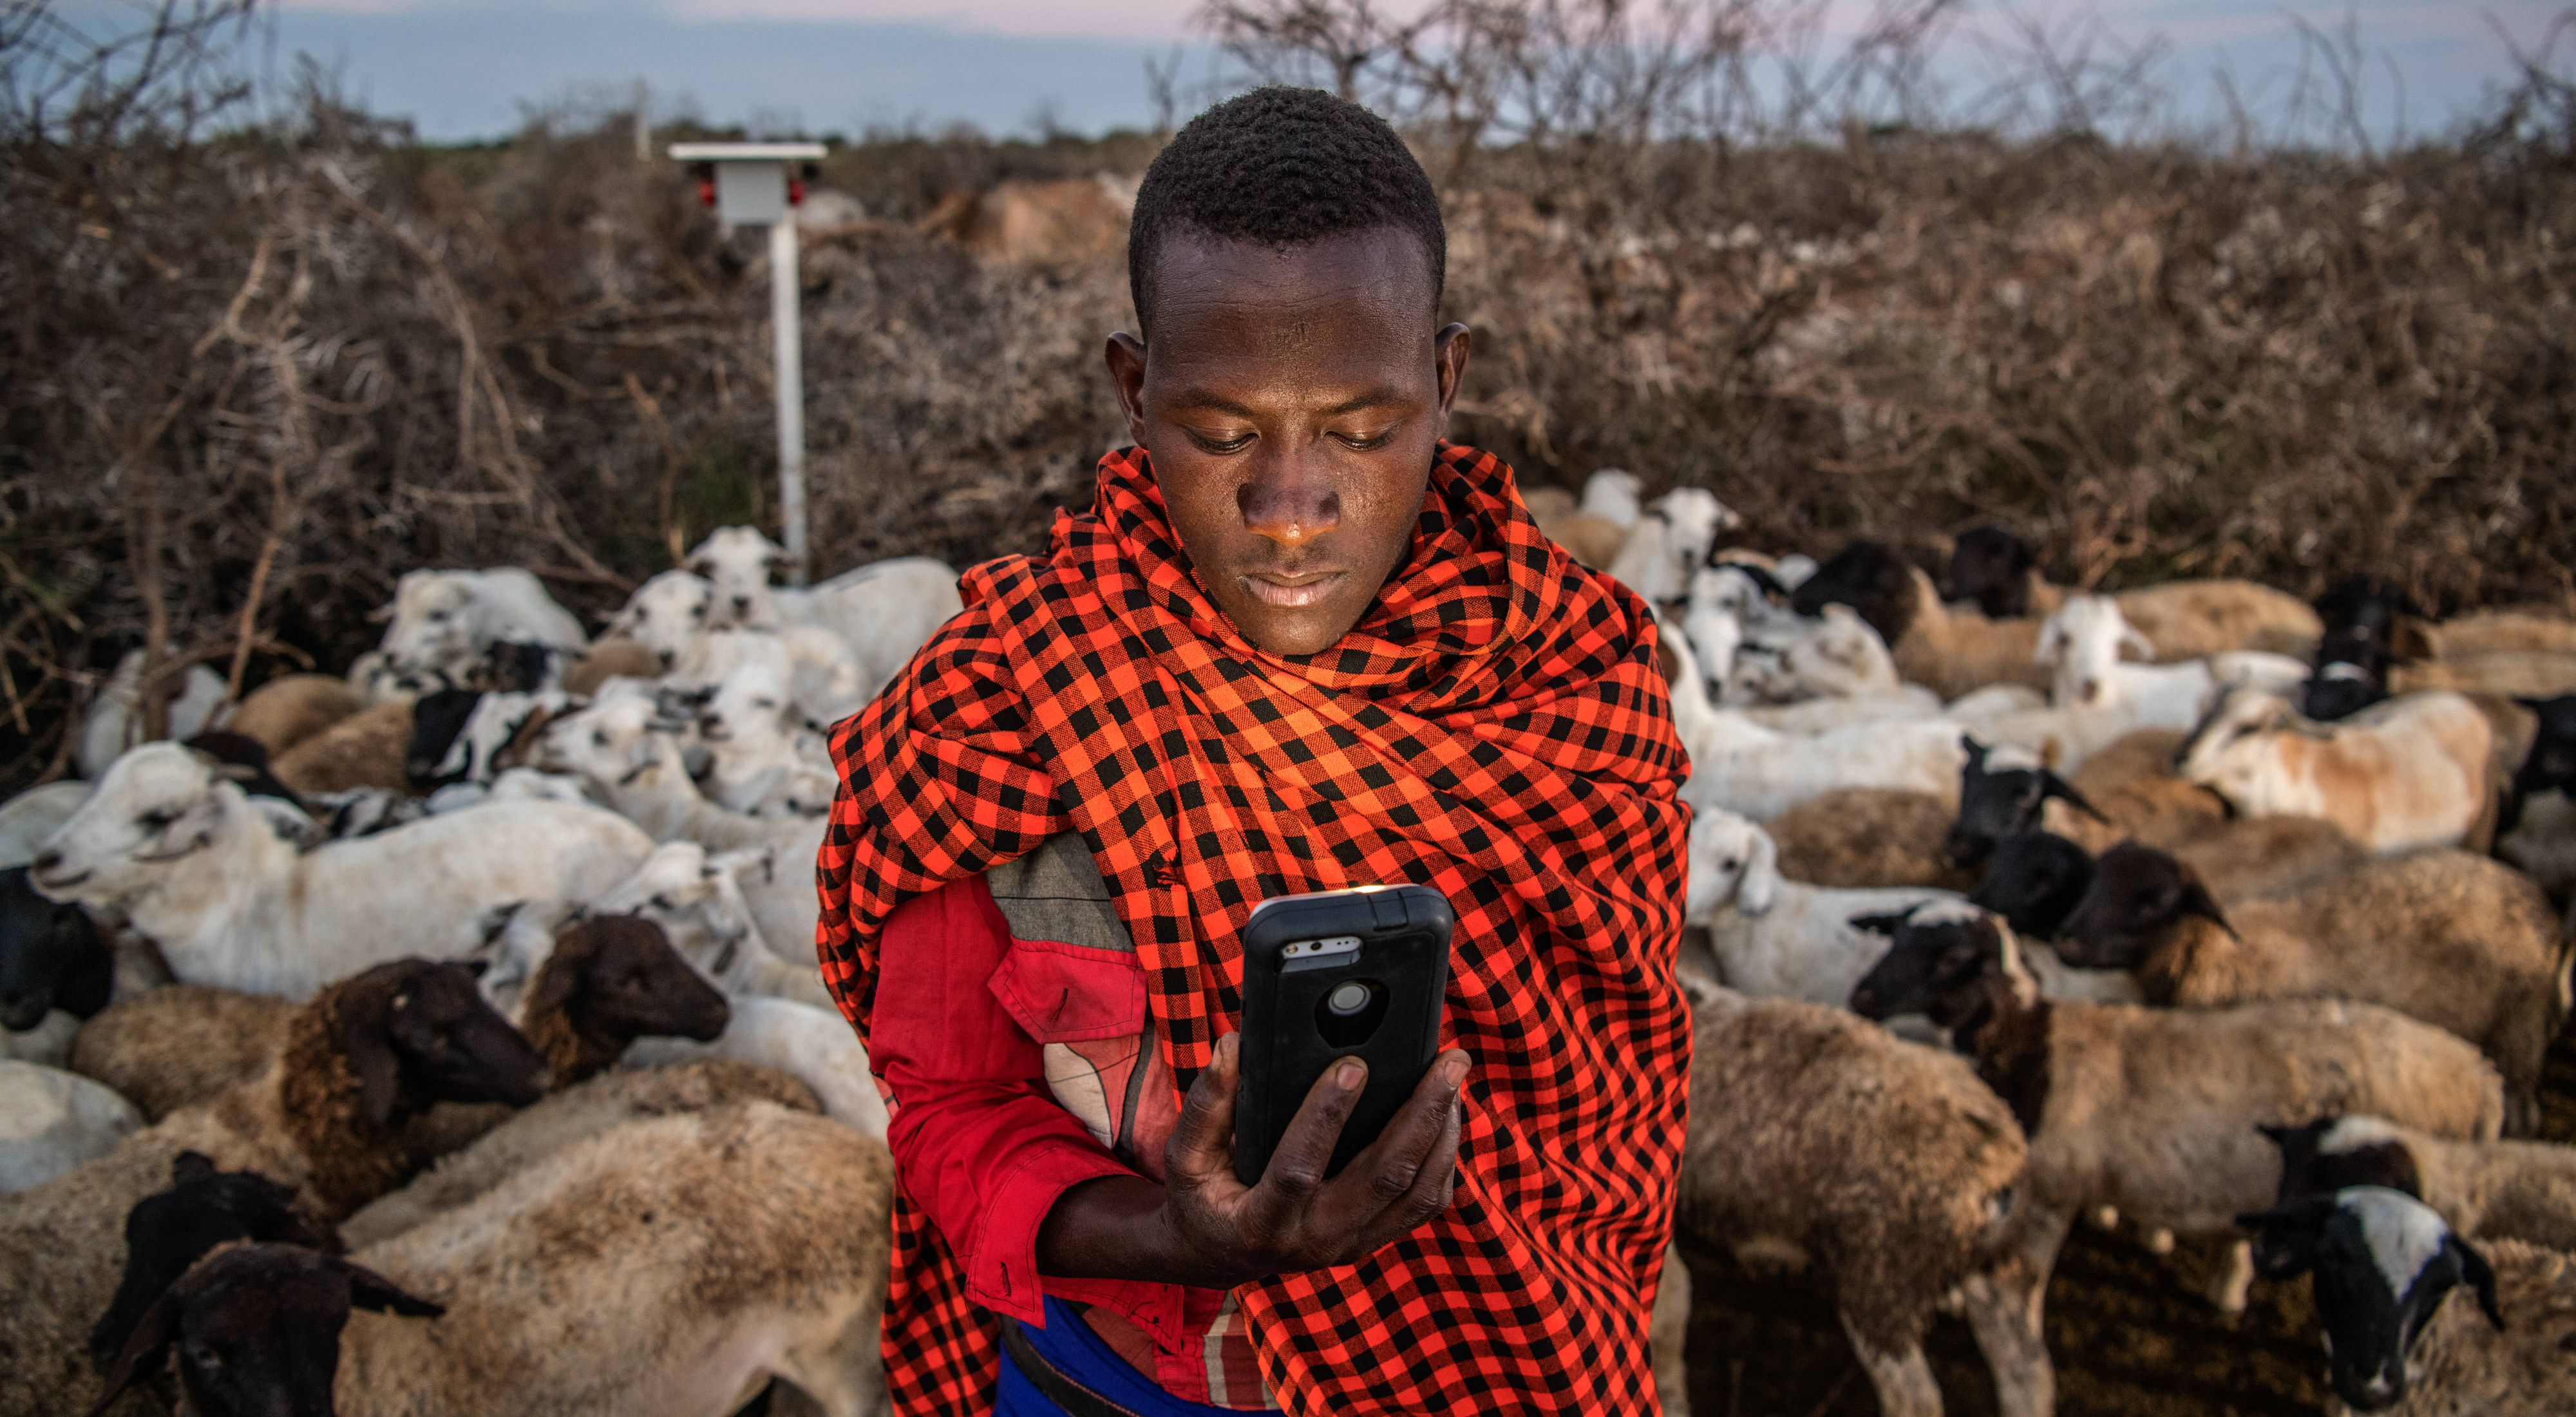 checks lion locations on his mobile app at Loisaba Conservancy in northern Kenya.